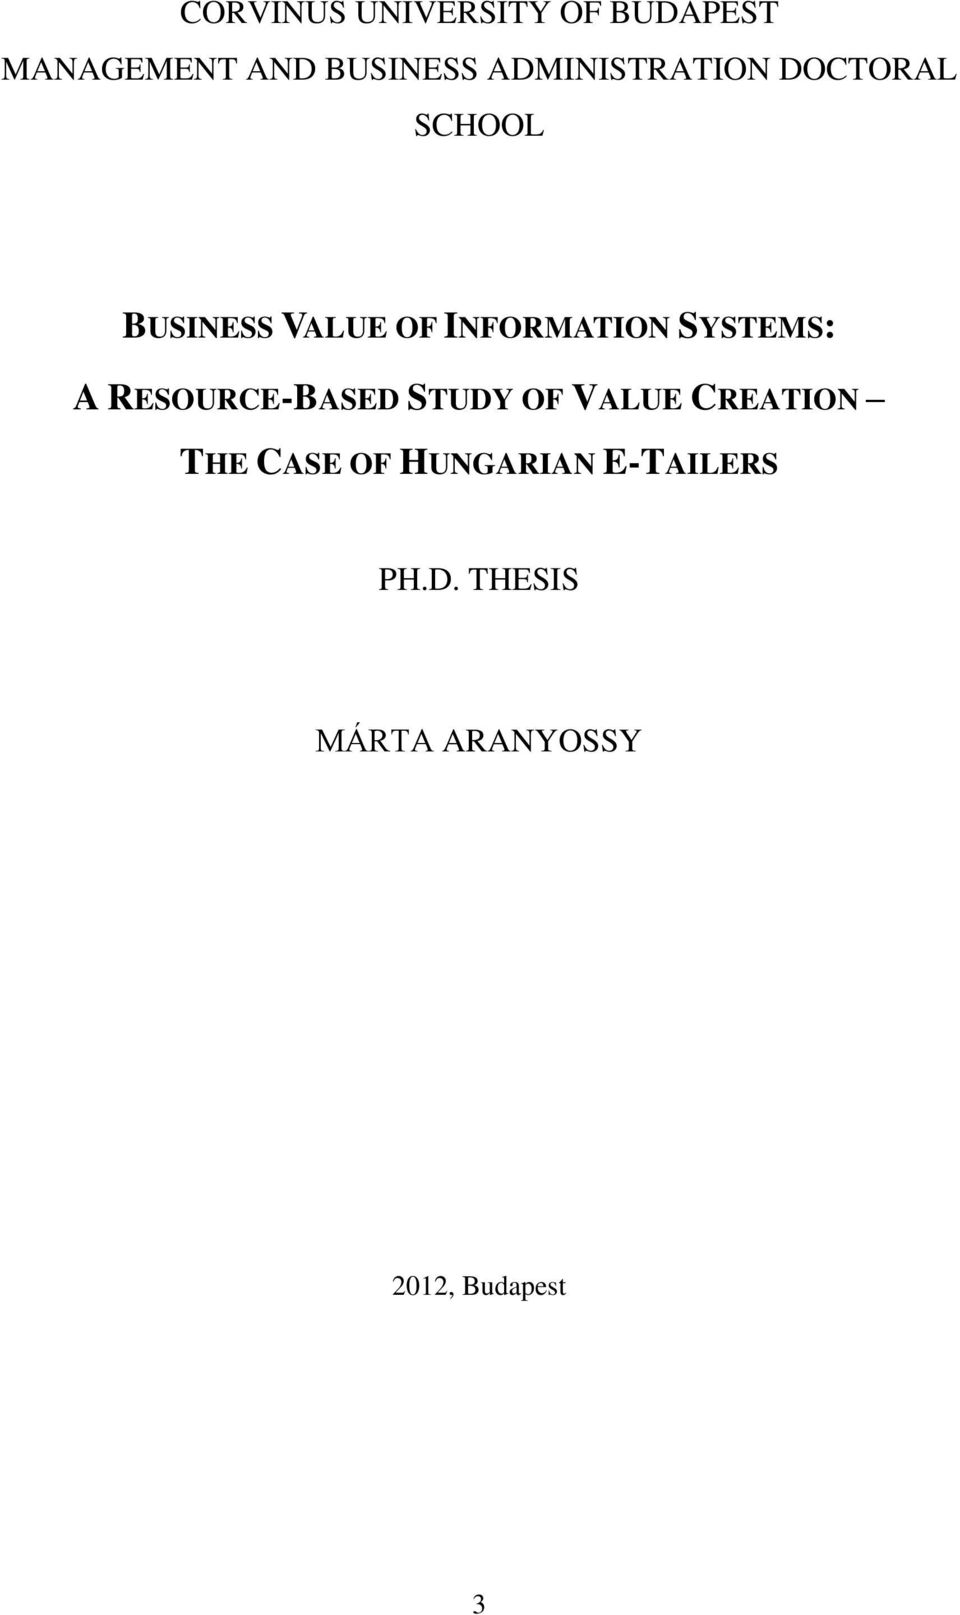 SYSTEMS: A RESOURCE-BASED STUDY OF VALUE CREATION THE CASE